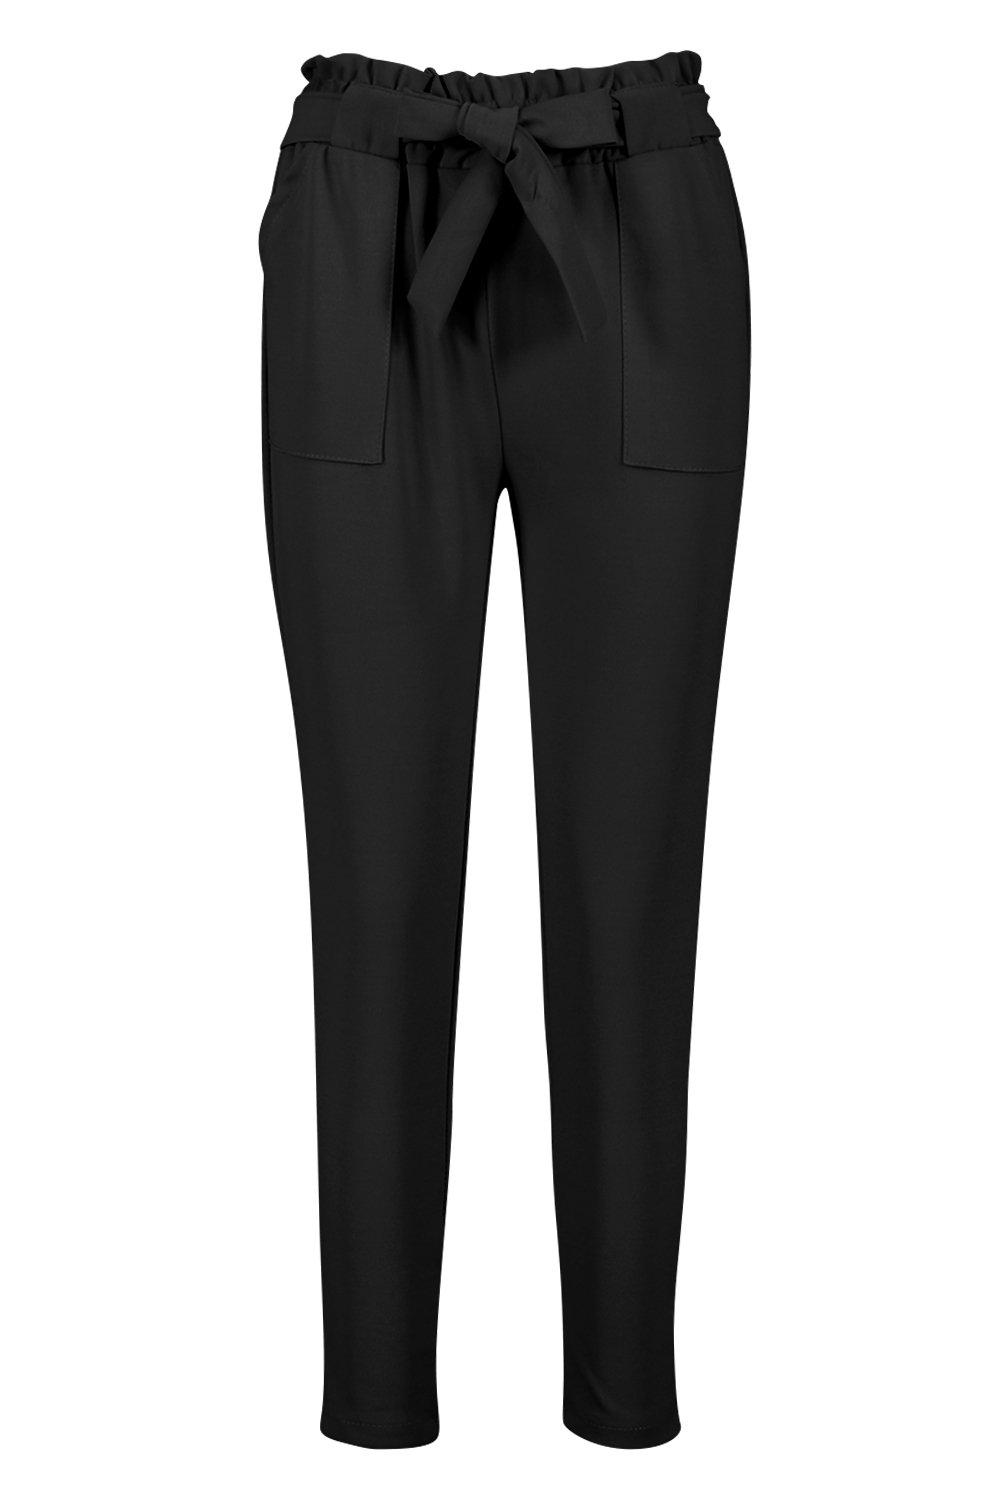 Boohoo-Hailey-Paperbag-Waist-Belted-Trouser-para-Mujer